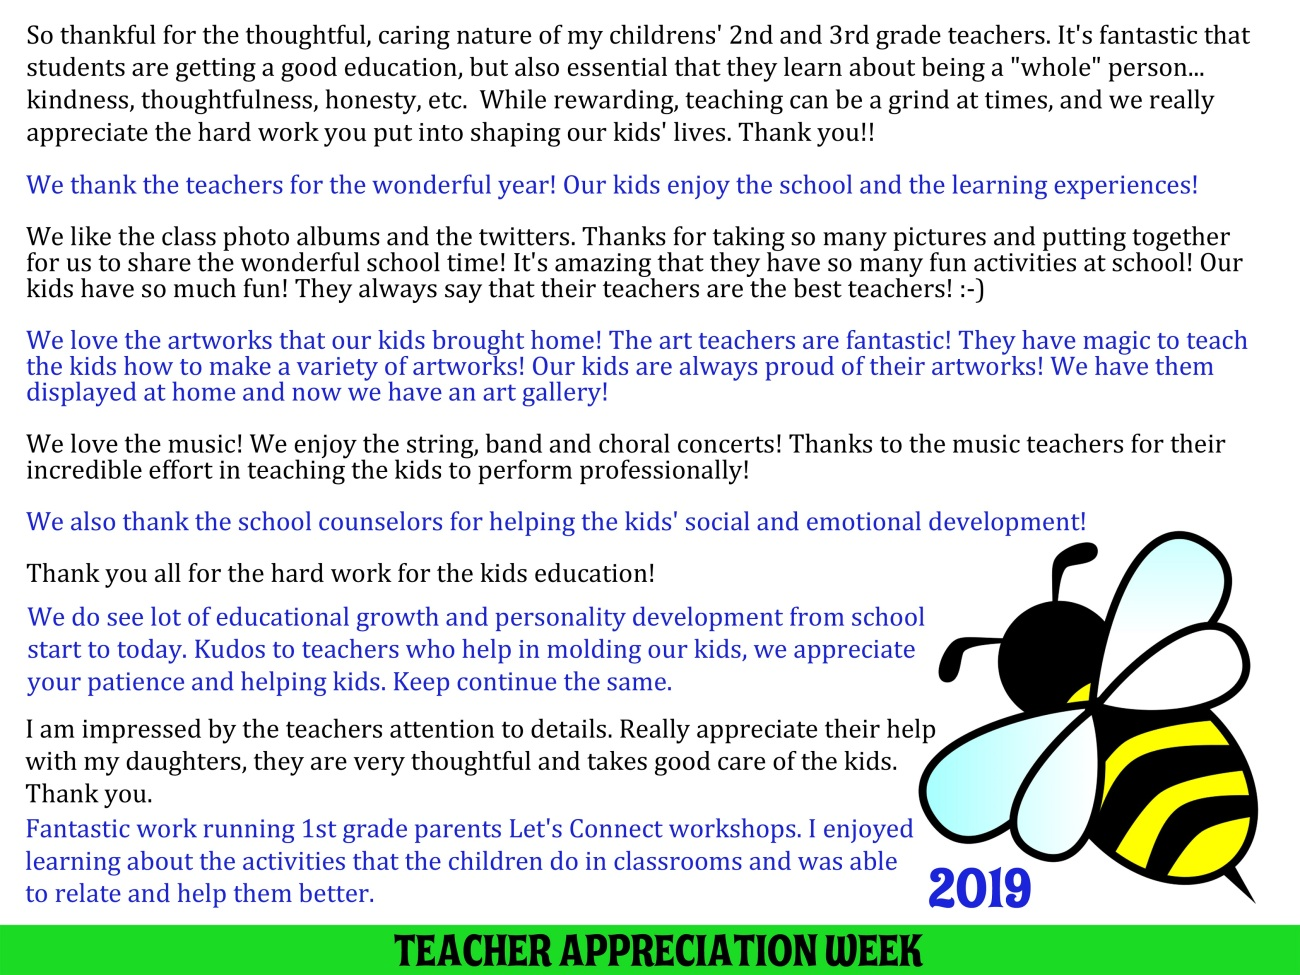 TeacherAppreciationWeek2019p2